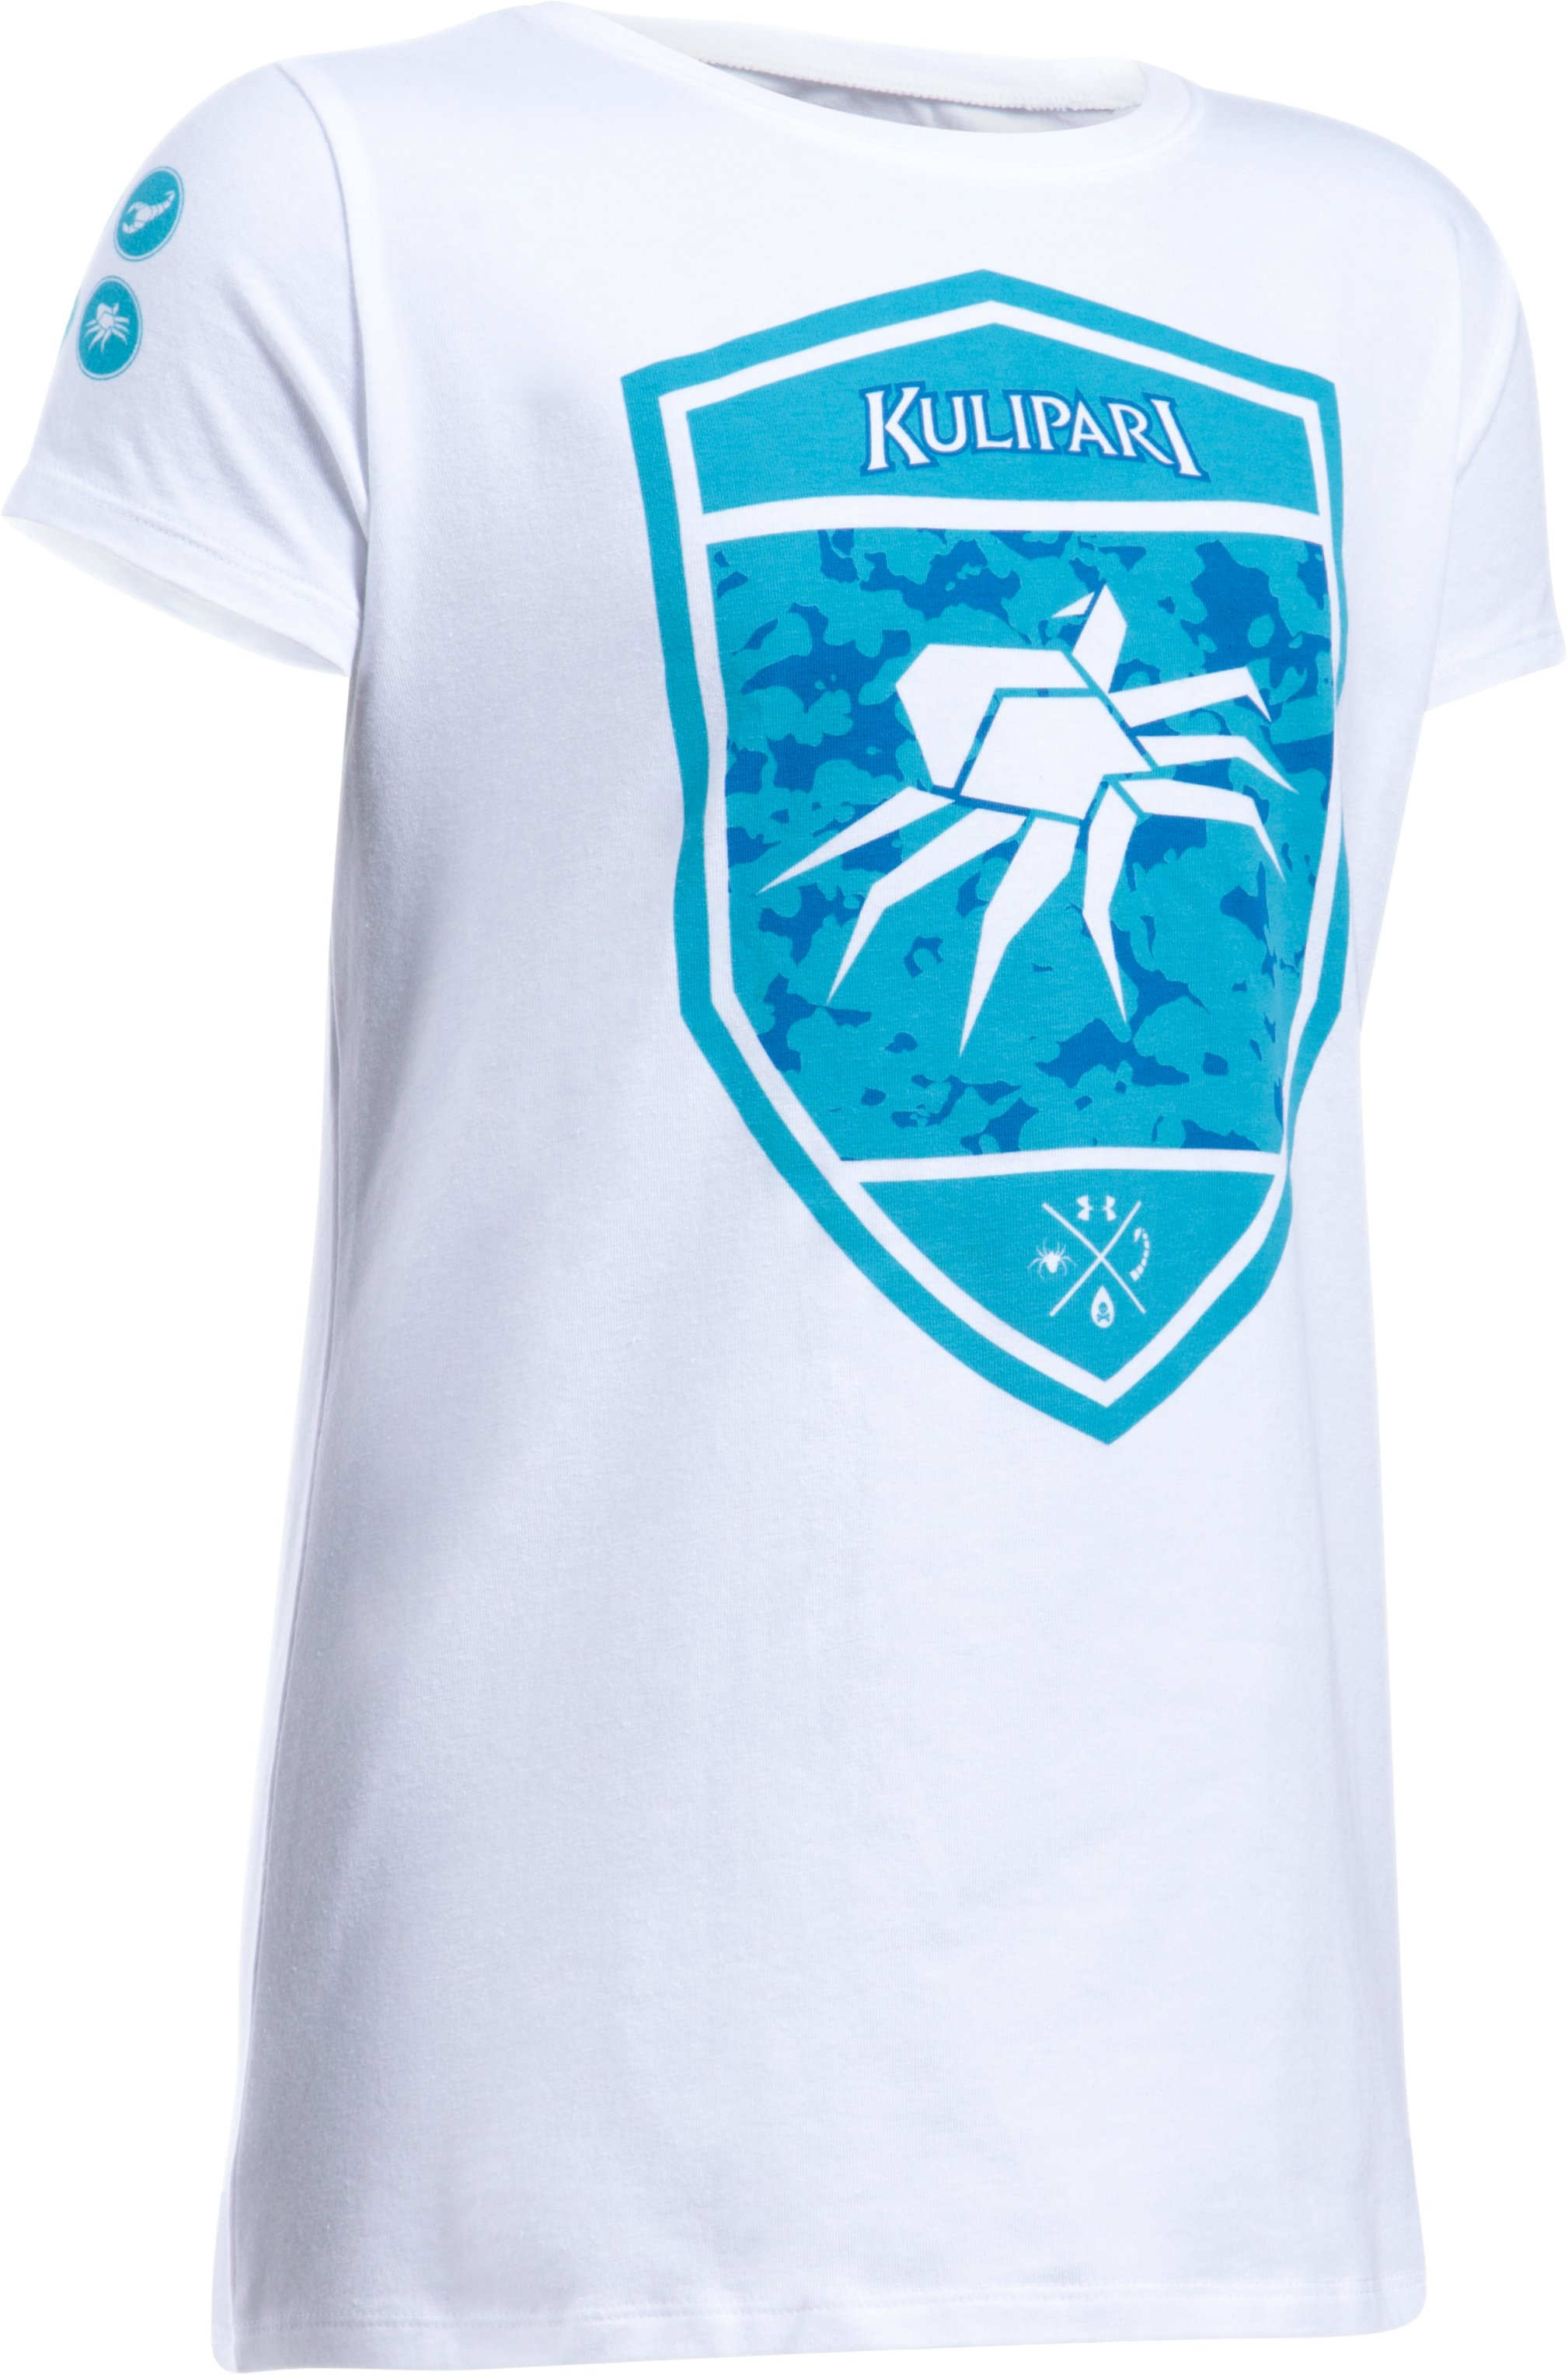 Girls' UA Kulipari Spider Short Sleeve T-Shirt, White, zoomed image